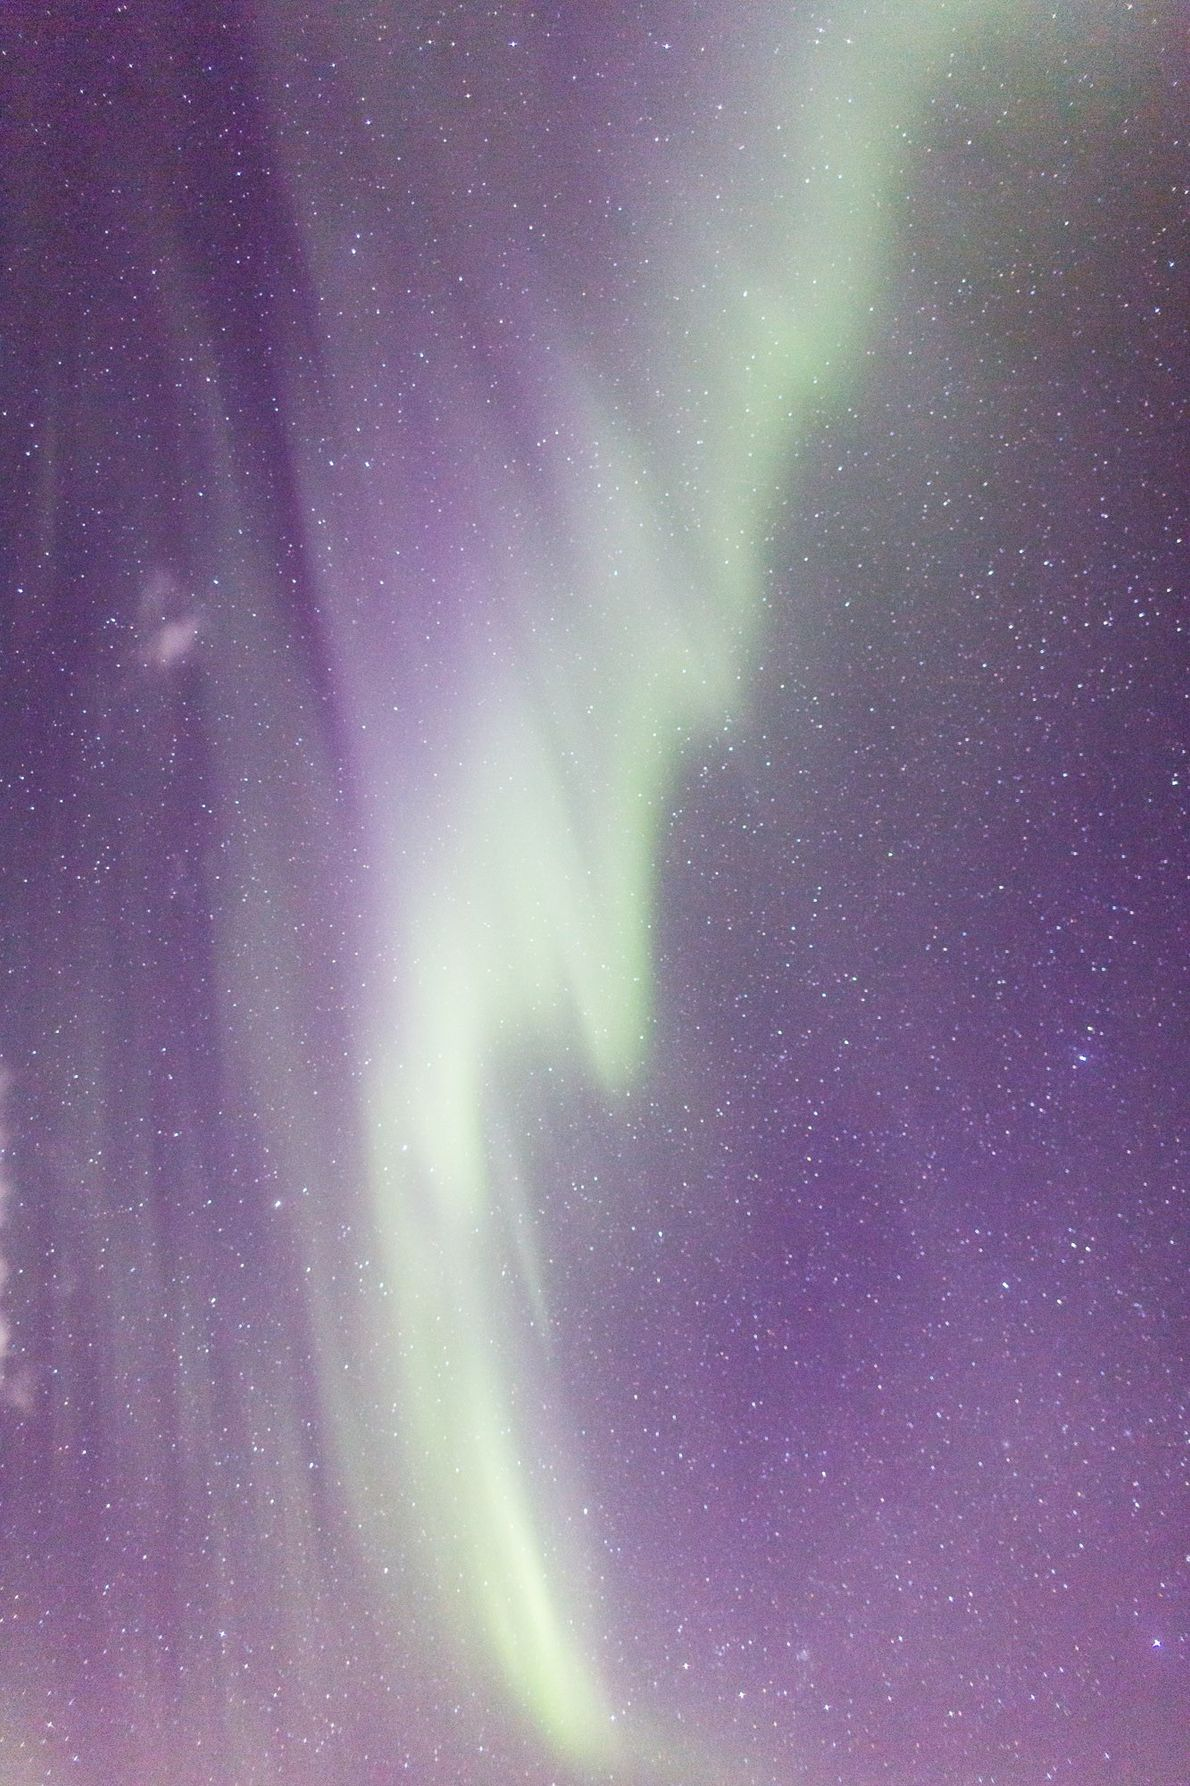 Ribbons of green paint the skies over Iceland.